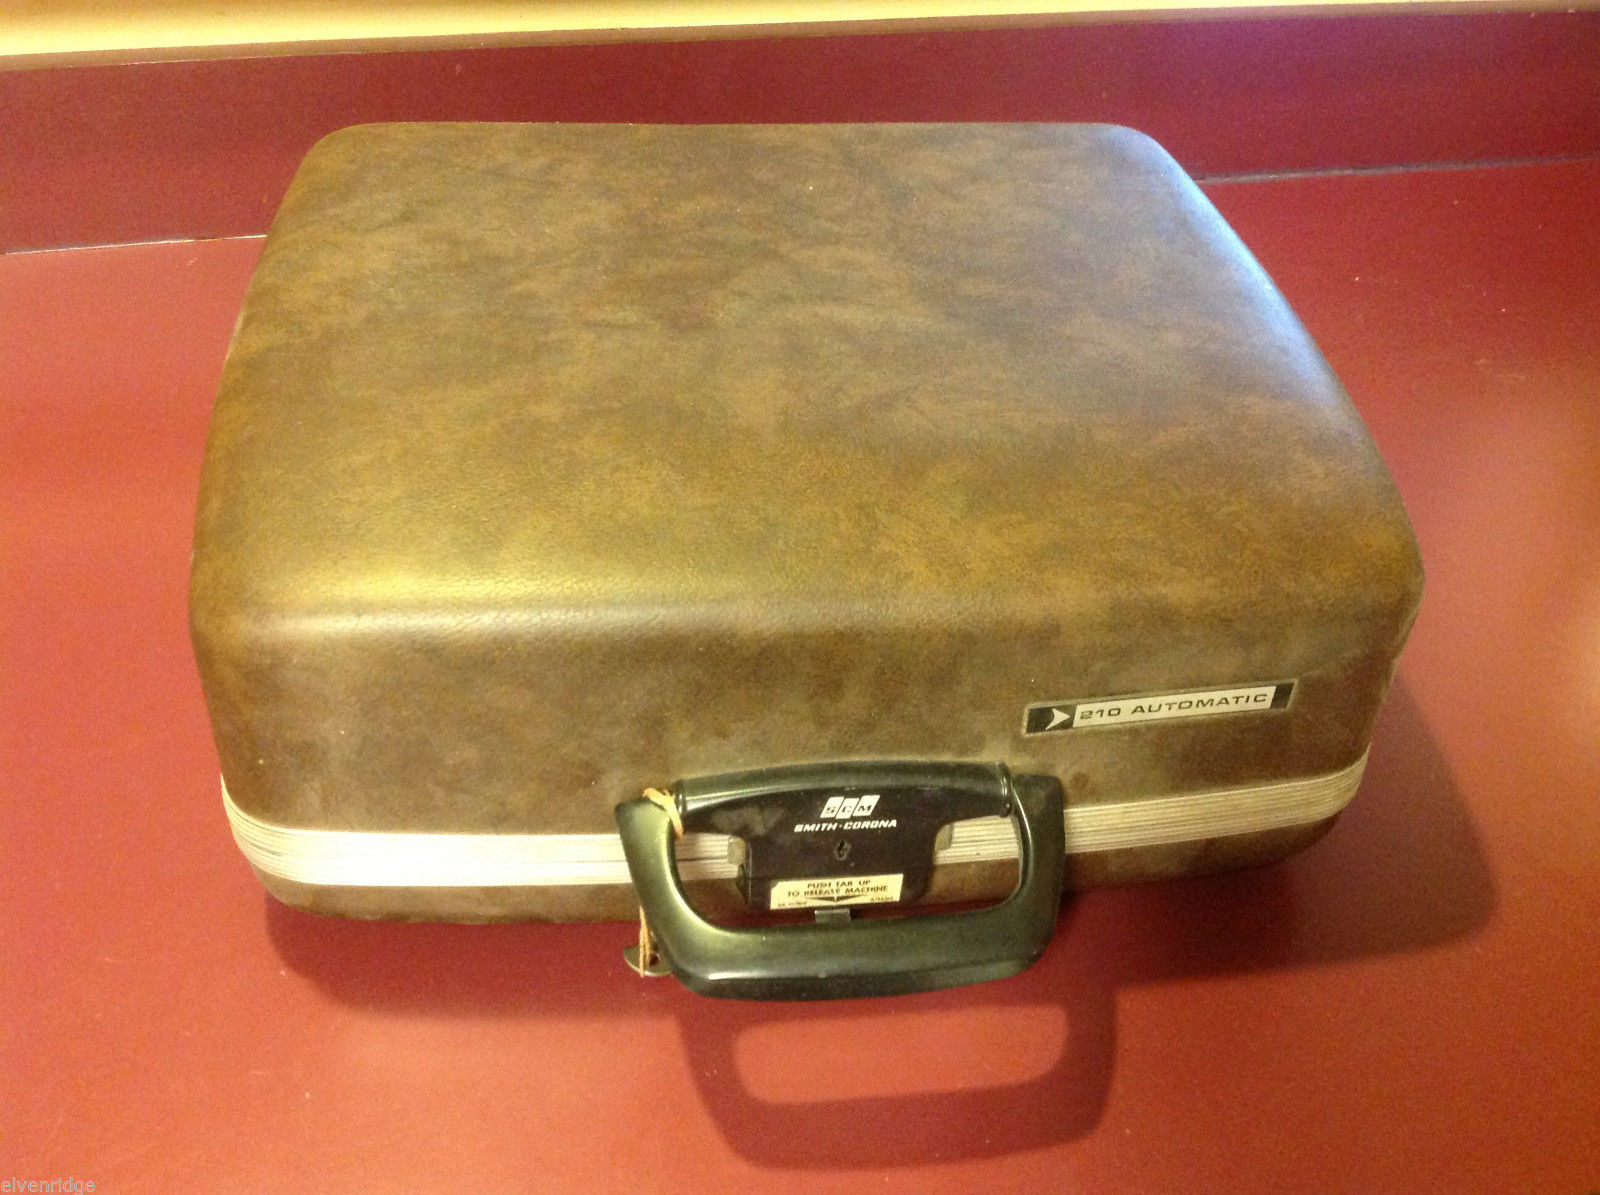 Vintage empty Smith Corona hardcase carry box for typewriter for repurposing